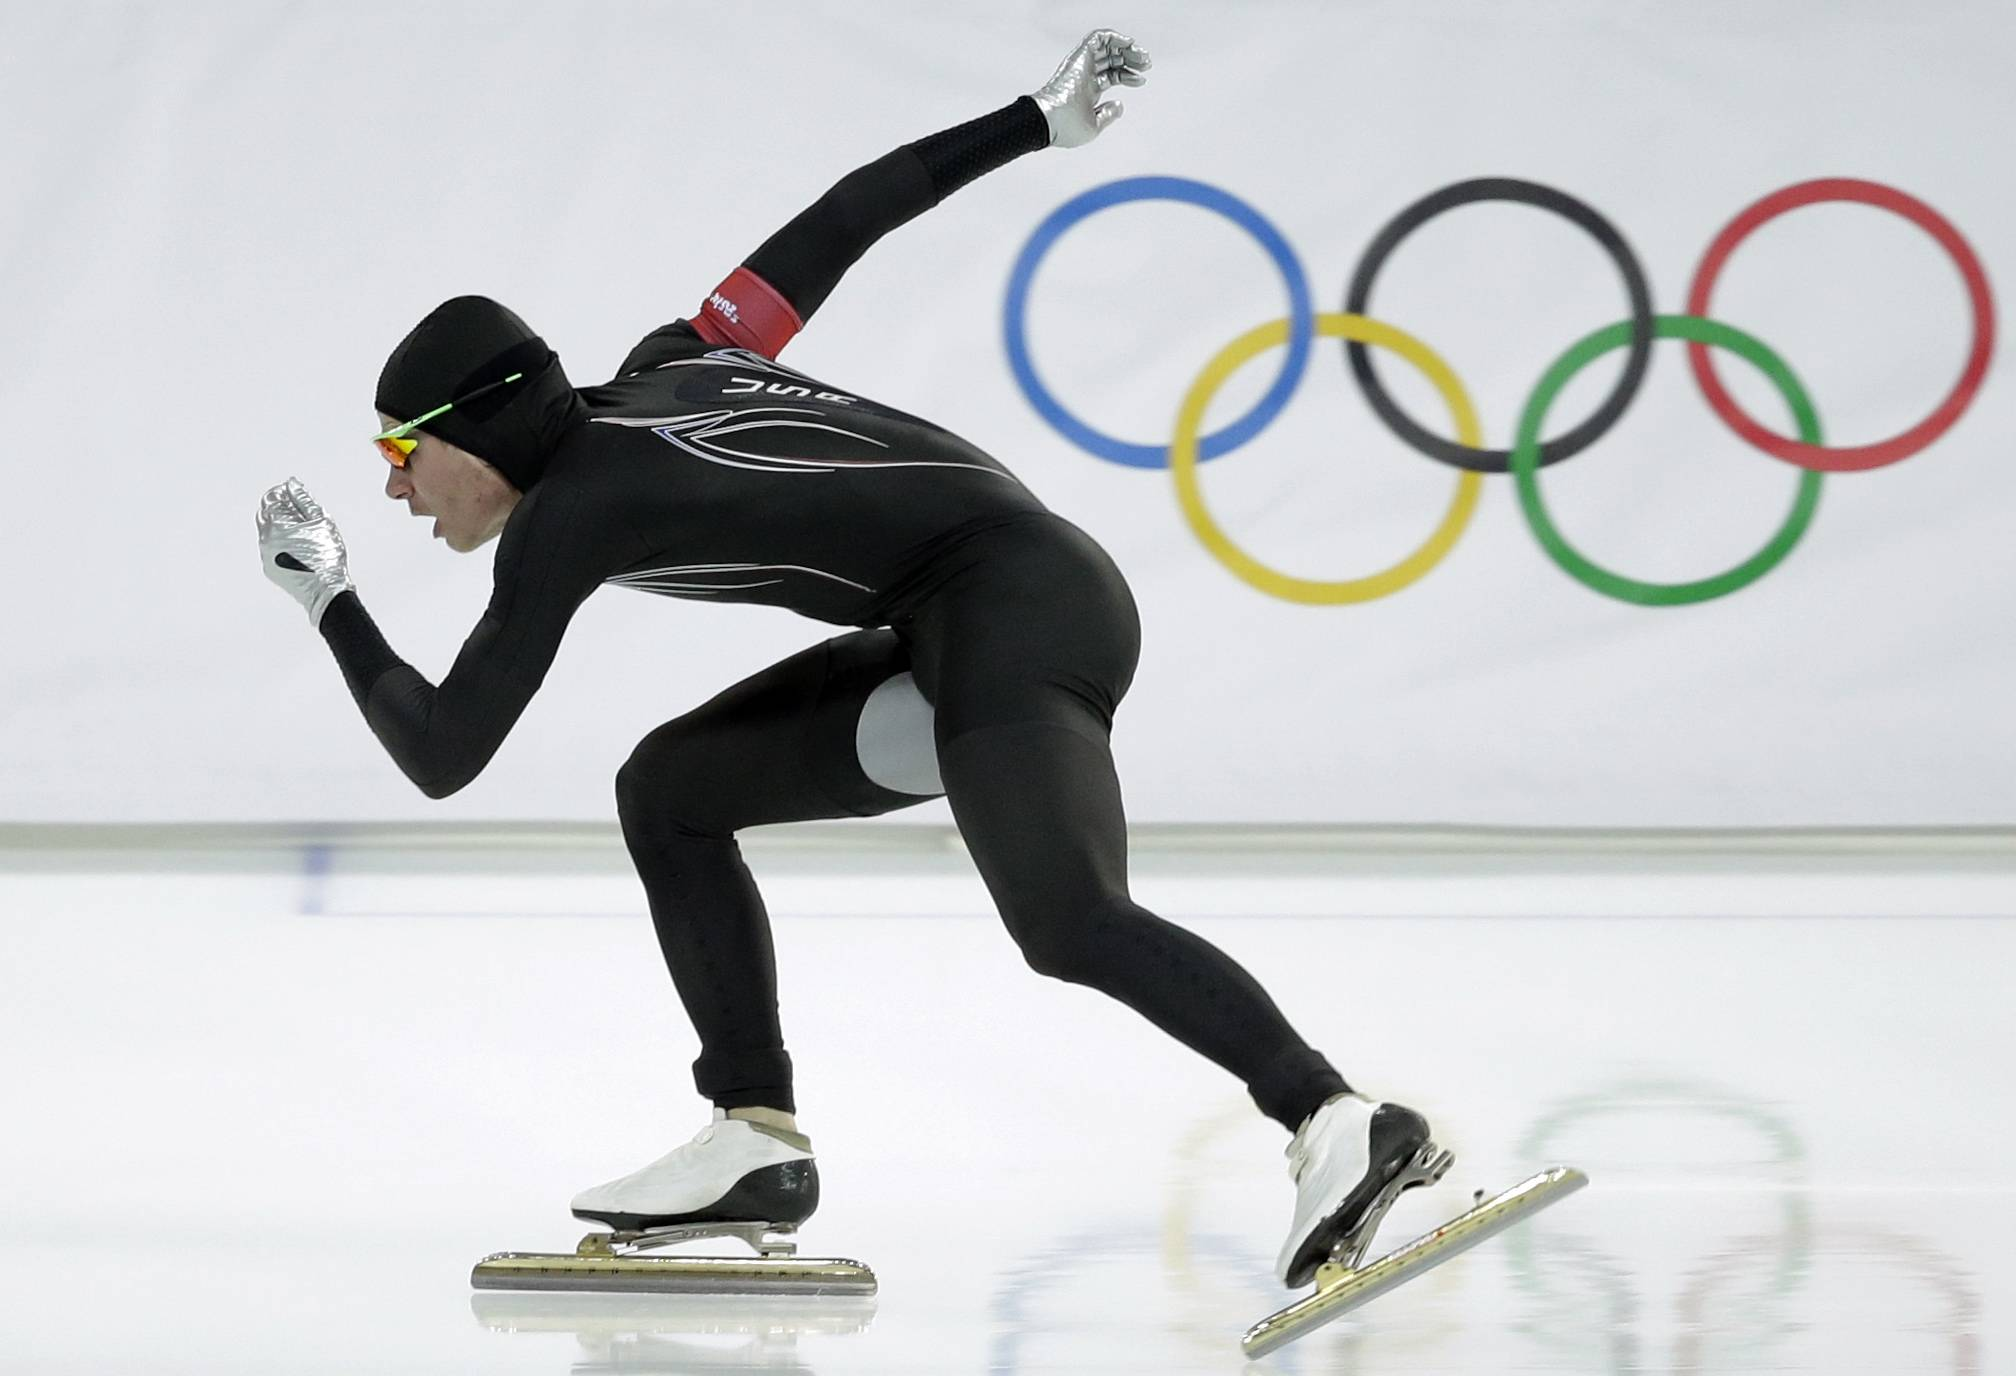 After a strong season on the World Cup circuit, the U.S. speedskating team has had a miserable performance the first week of the Sochi Olympics -- and much of the speculation has turned to its new high-tech Under Armour skinsuit developed with help from aerospace and defense giant Lockheed Martin.